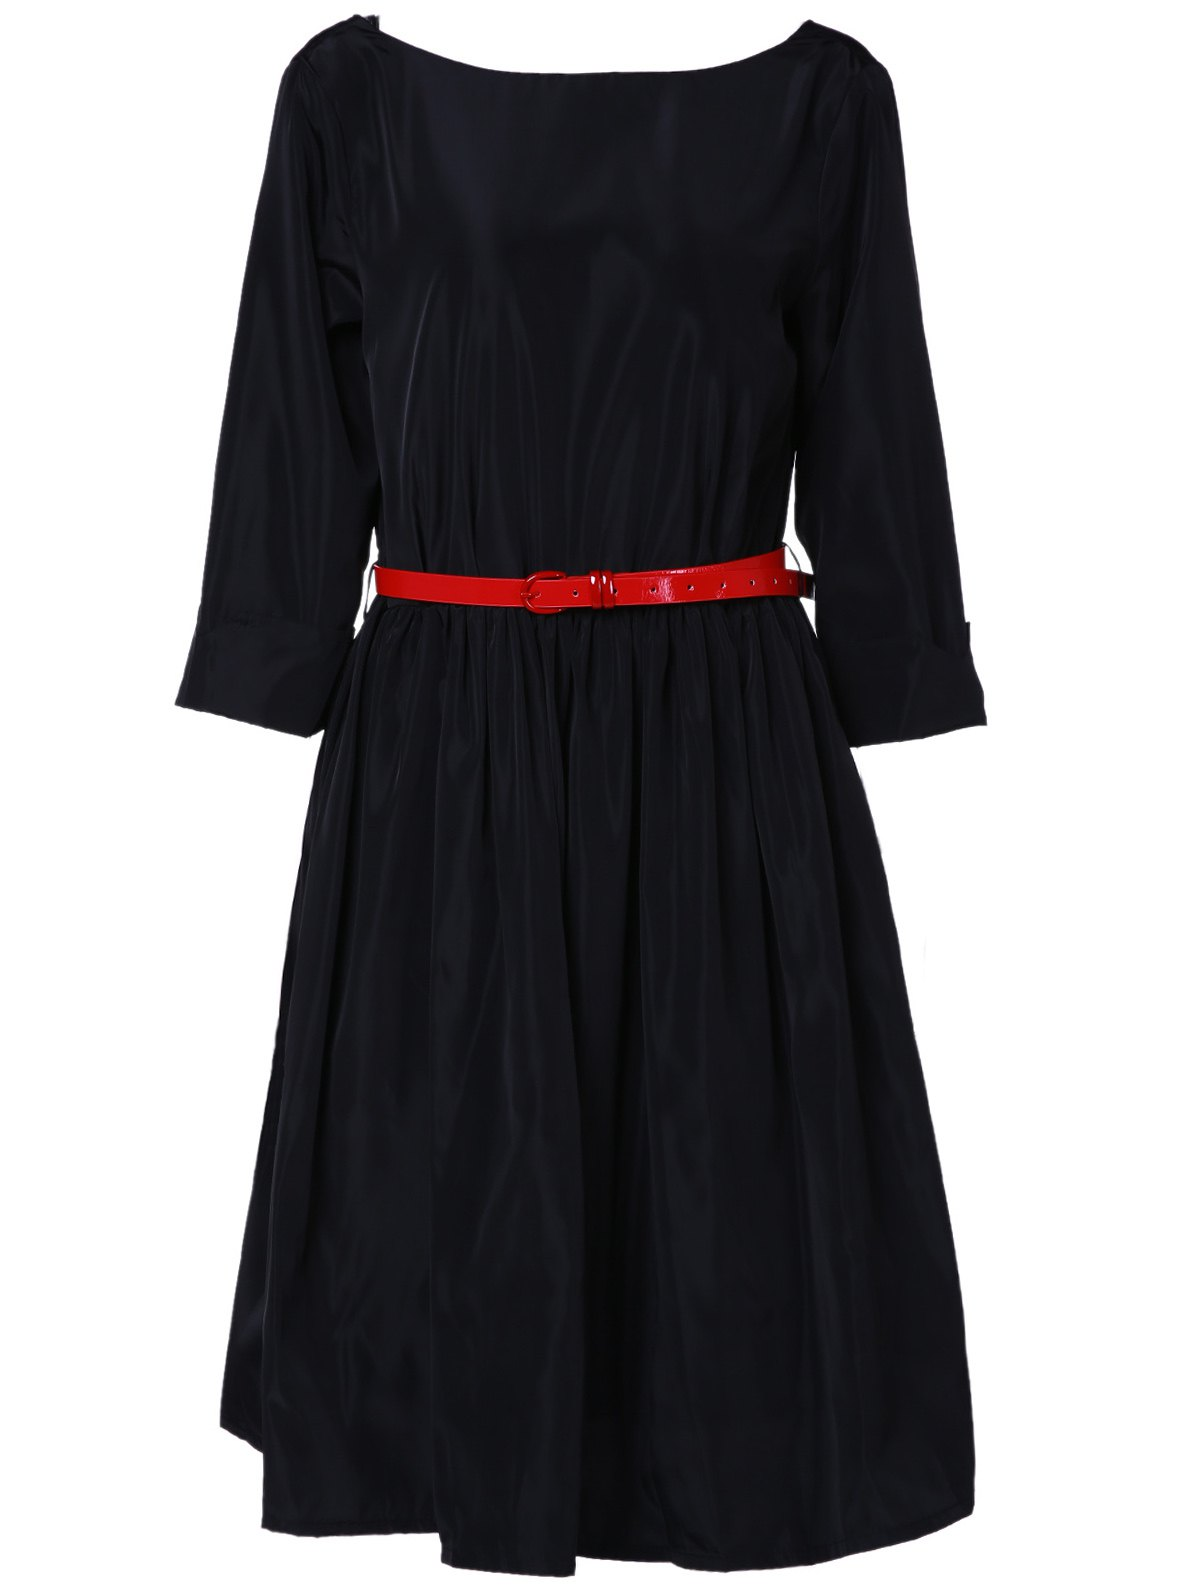 Noble Solid Color Boat Neck 3/4 Sleeve Flare Dress For Women - BLACK S